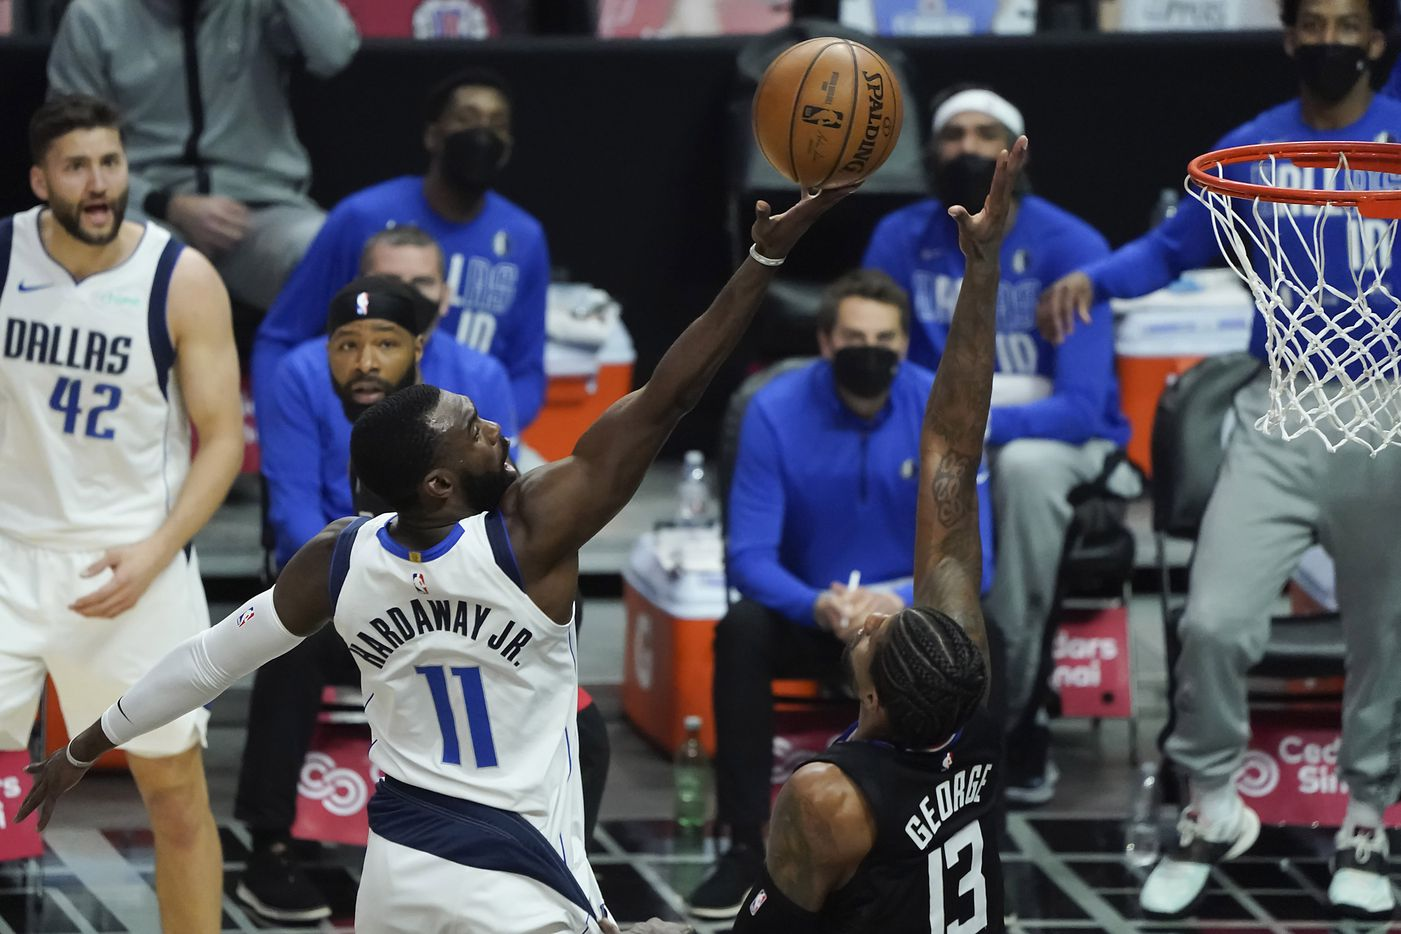 Dallas Mavericks forward Tim Hardaway Jr. (11) has a shot blocked by LA Clippers guard Paul George (13) during the first half of an NBA playoff basketball game at Staples Center on Tuesday, May 25, 2021, in Los Angeles.